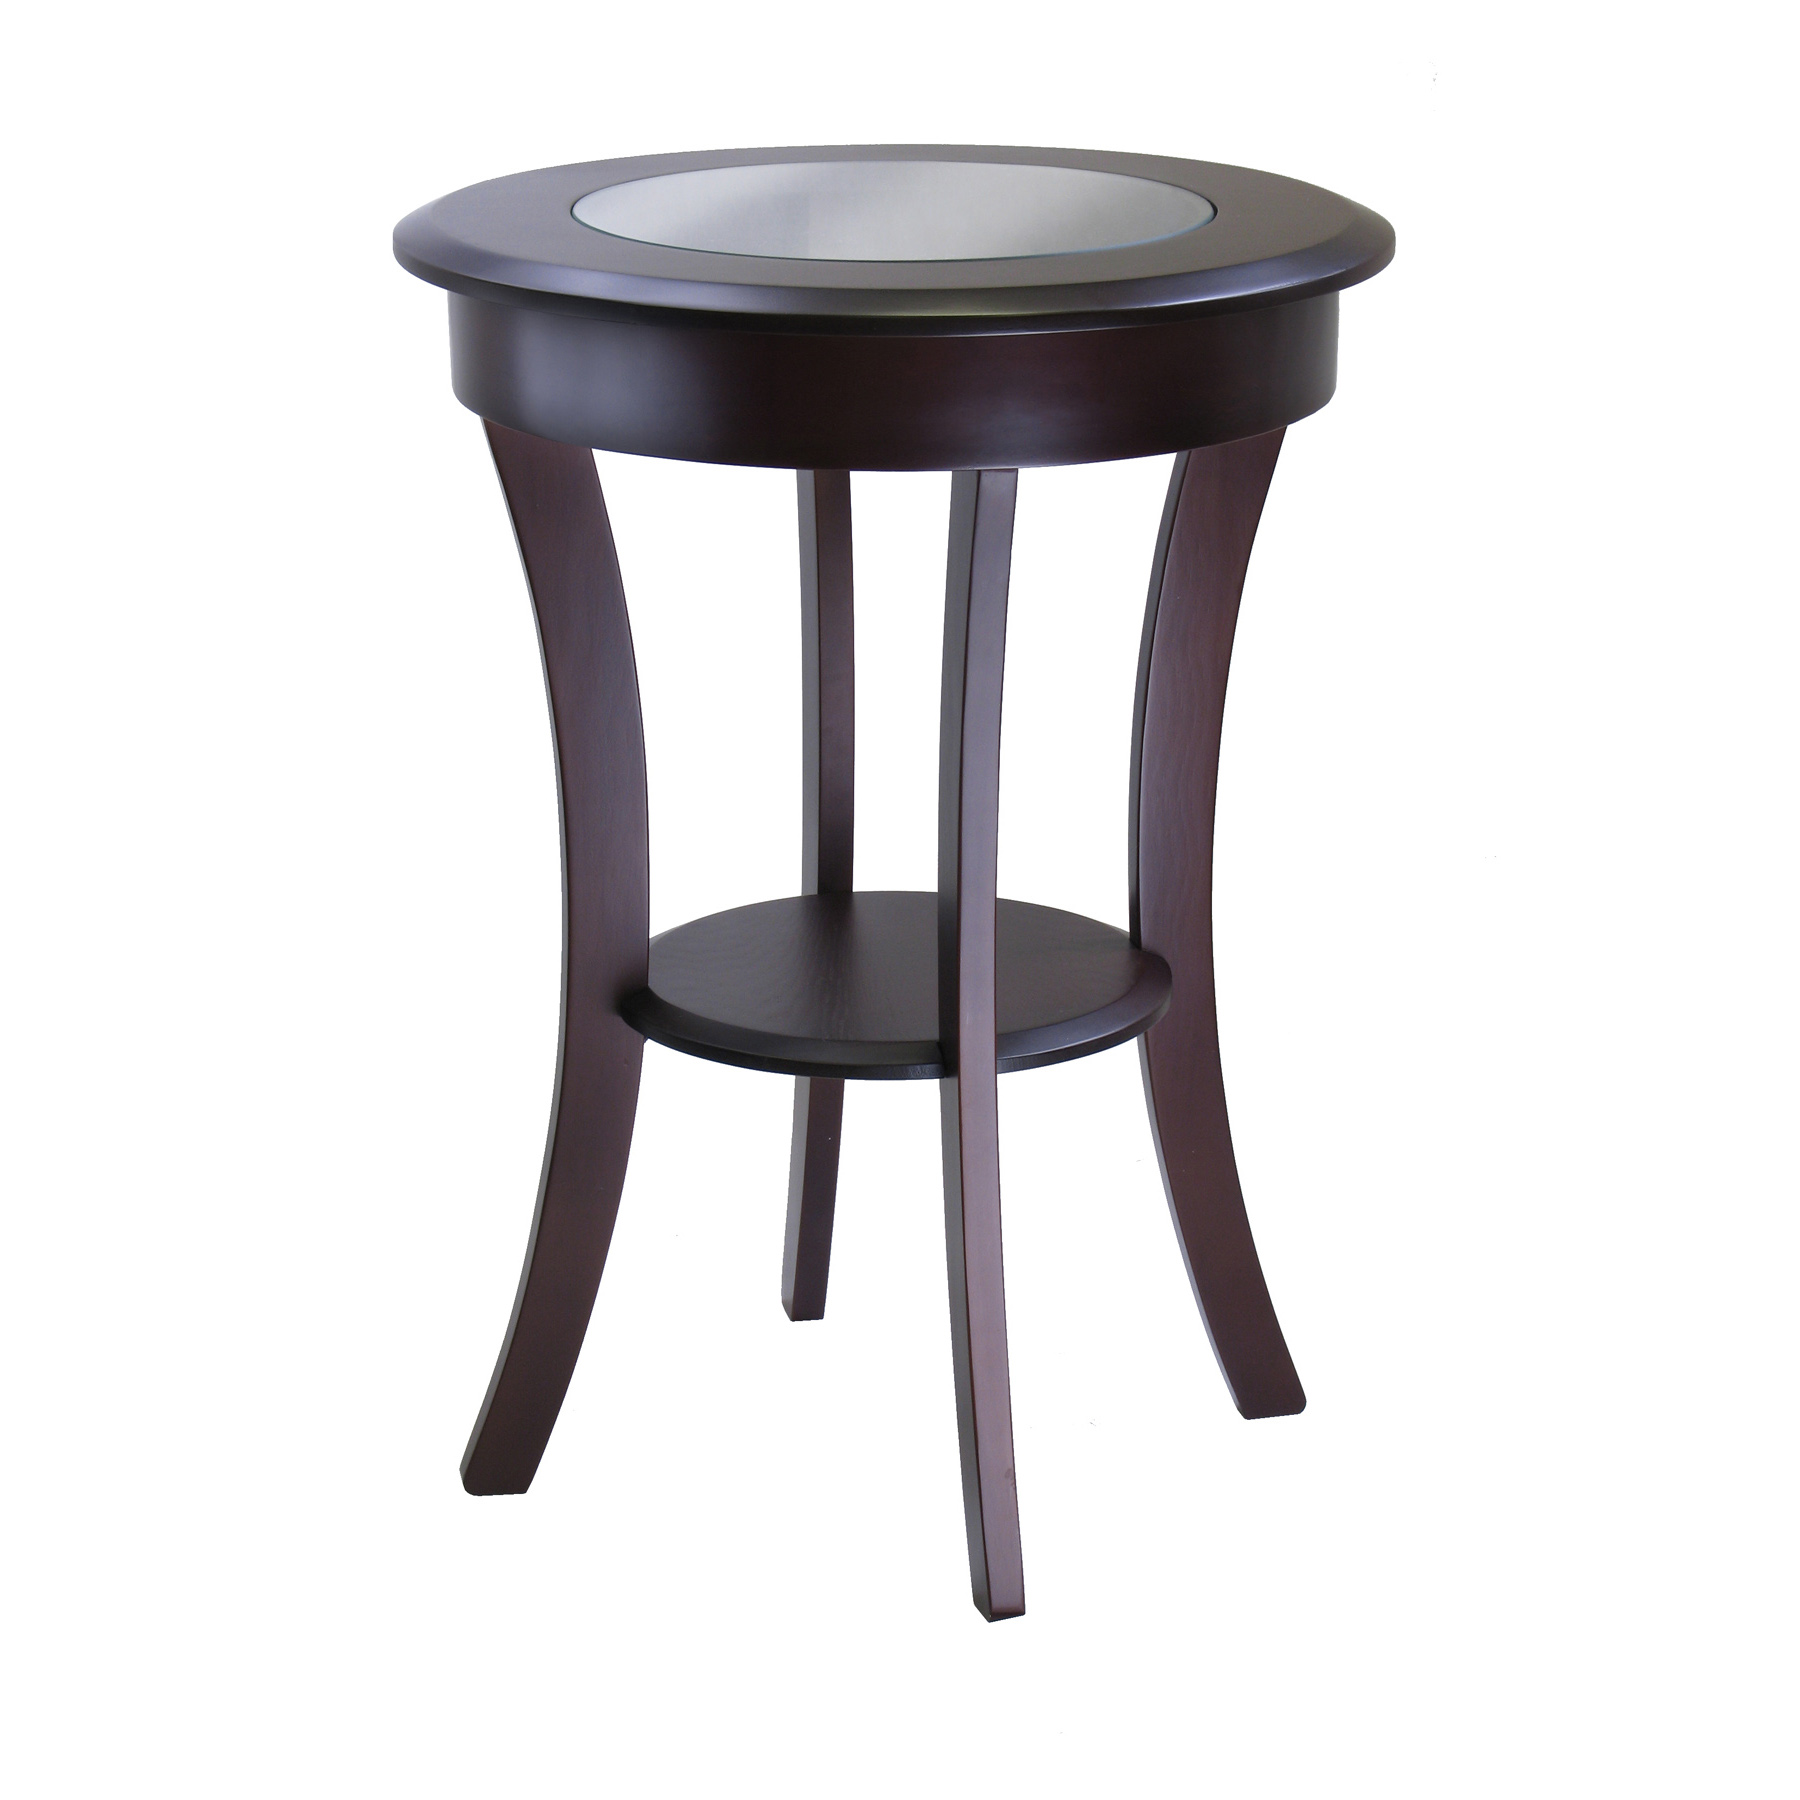 Winsome Wood Cassie Round Accent Table With Glass Top, Cappuccino